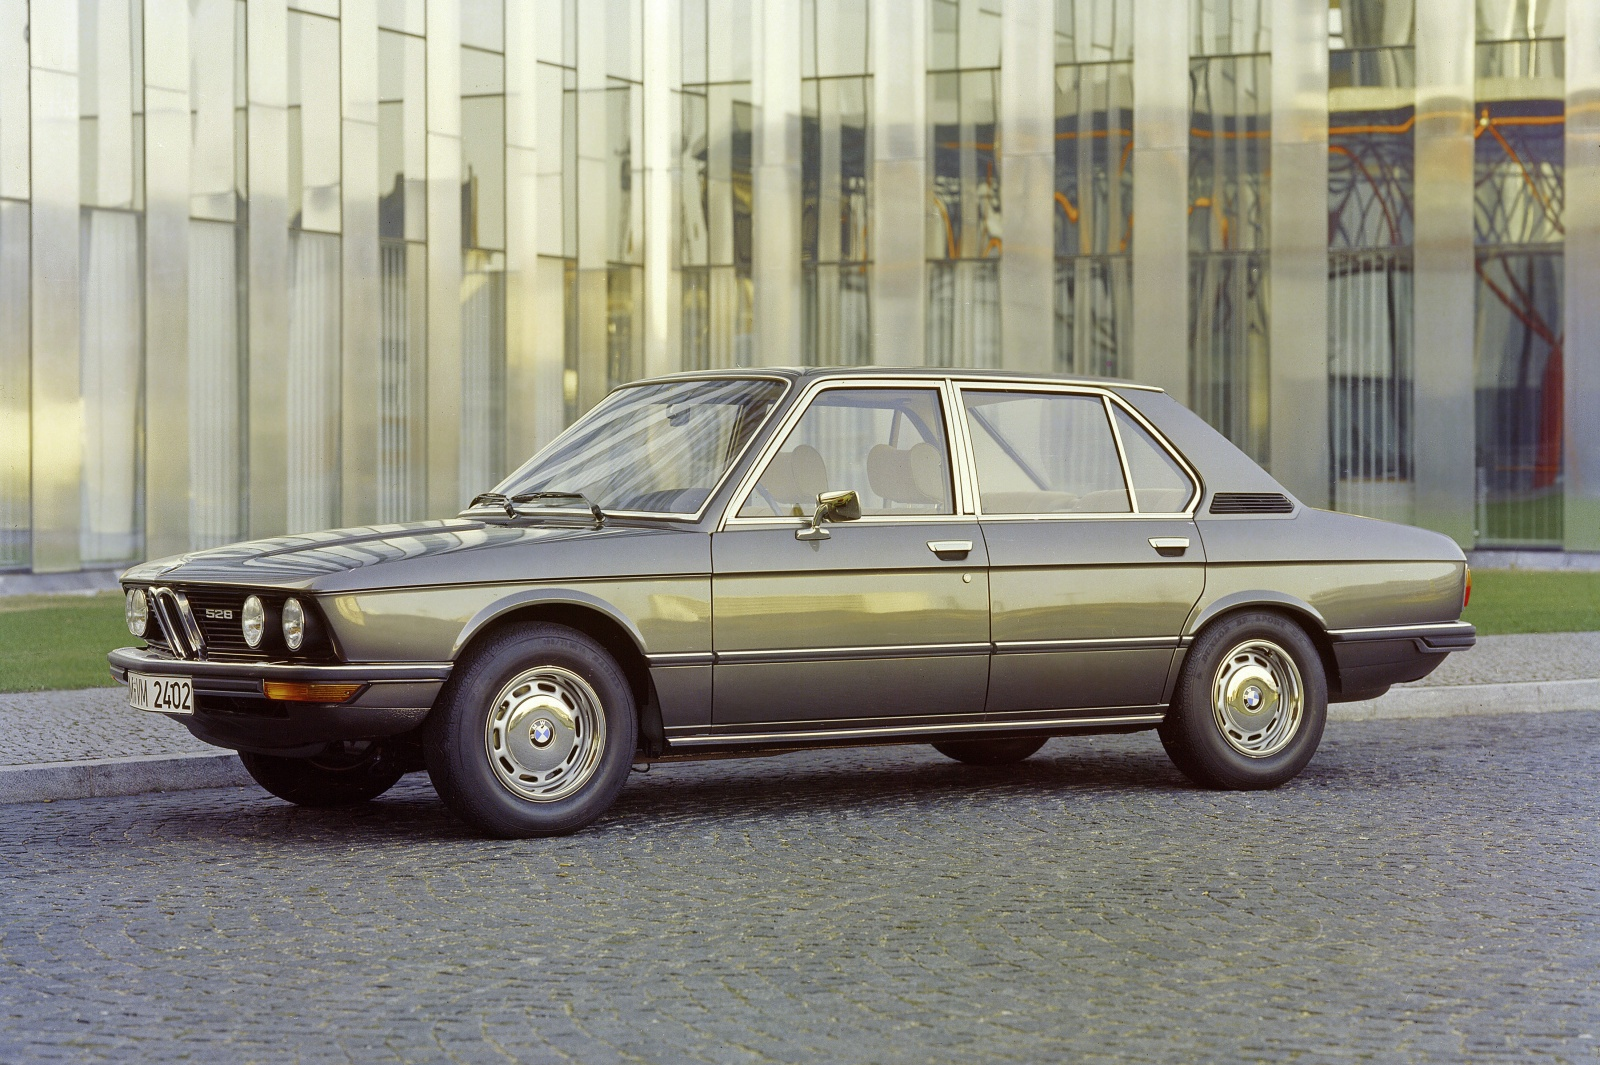 BMW 5 series 520i 1972 photo - 6